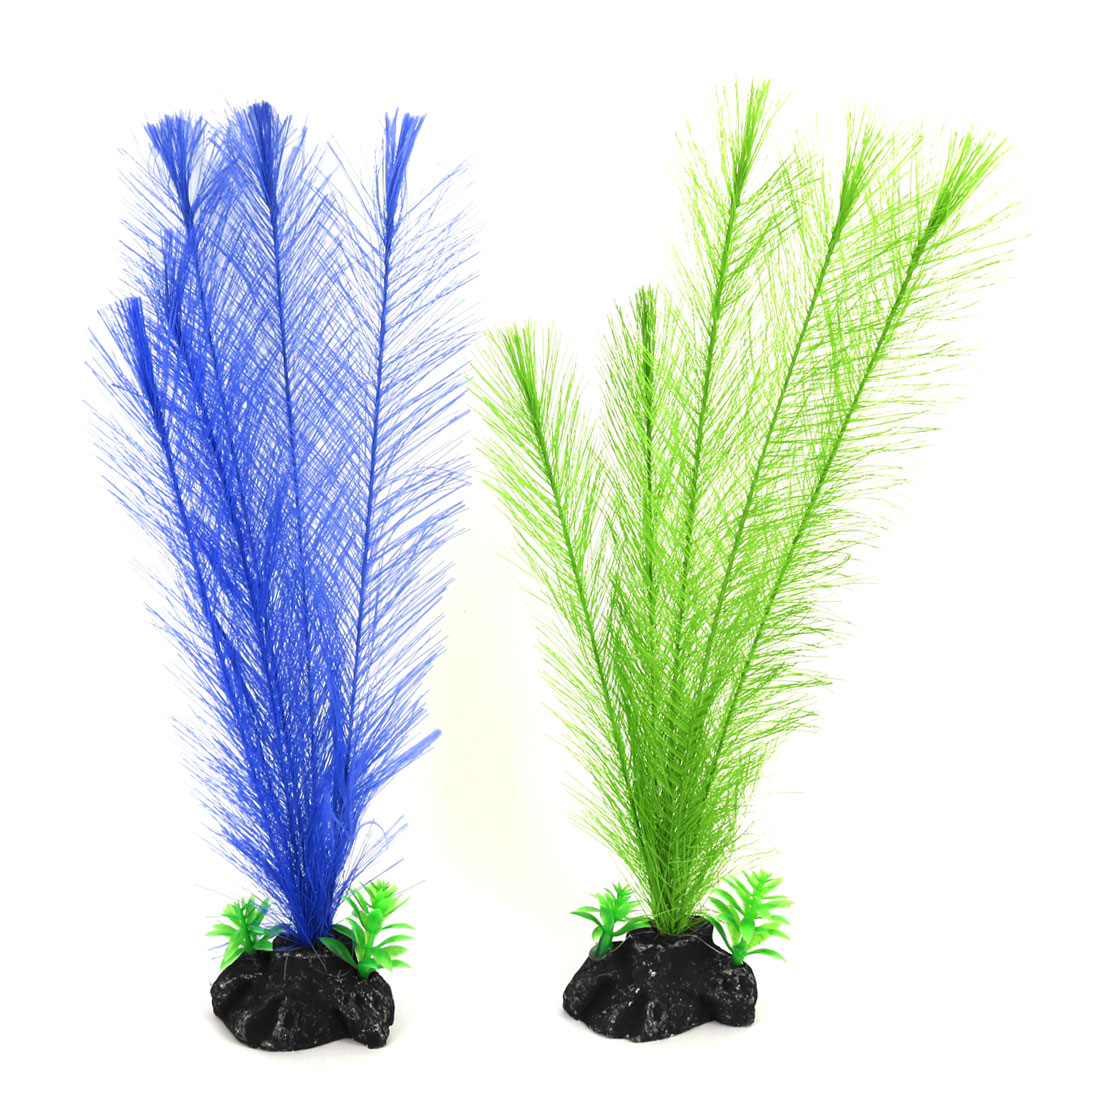 Underwater Upright Swing Fibre Leaves Stone Base Fish Tank Aquarium Plant 2pcs